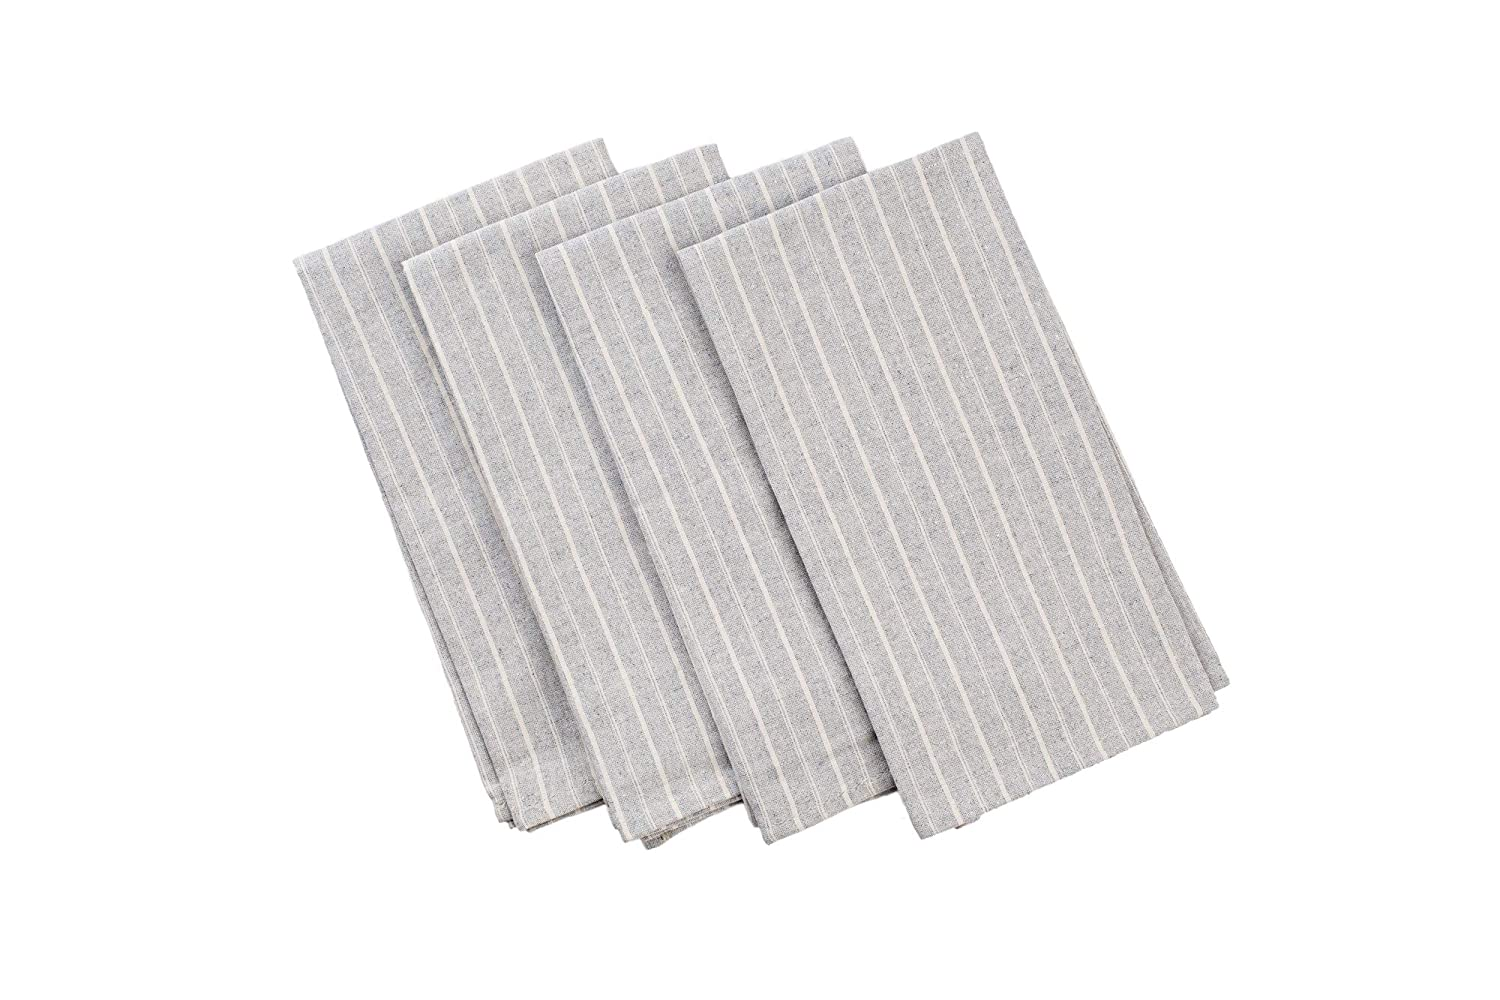 MEEMA Cloth Napkins Set of 4 | Eco Friendly Upcycled Denim and Cotton Napkins | Grey Striped | Everyday Dinner Napkins Cloth, Farmhouse Dining Table, Wedding Napkins, Zero Waste Home